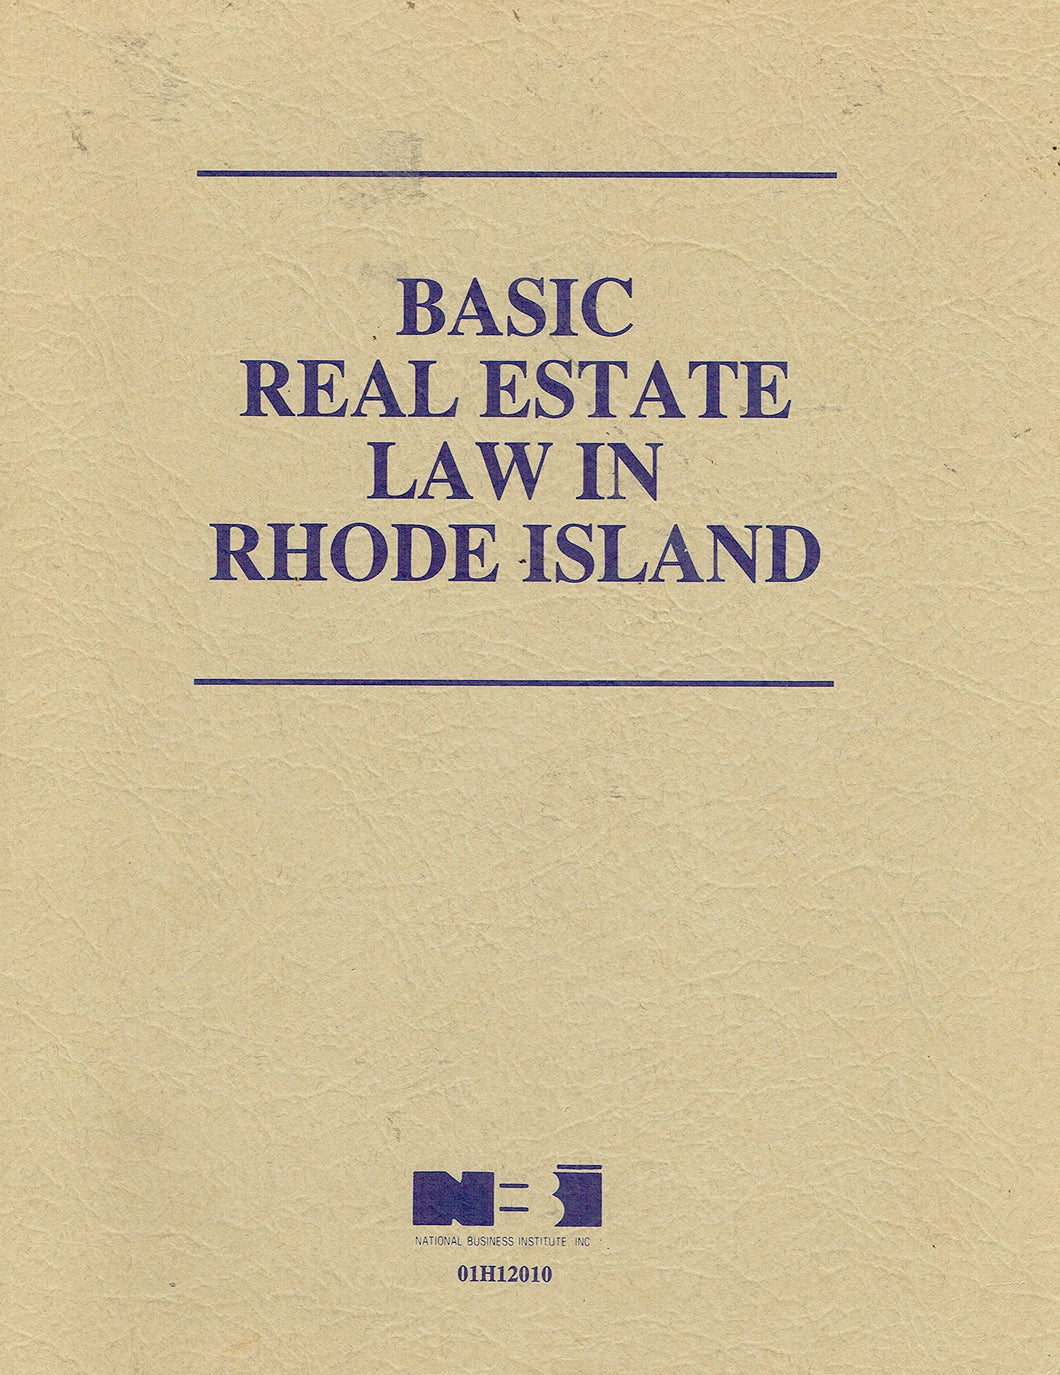 Basic Real Estate Law in Rhode Island